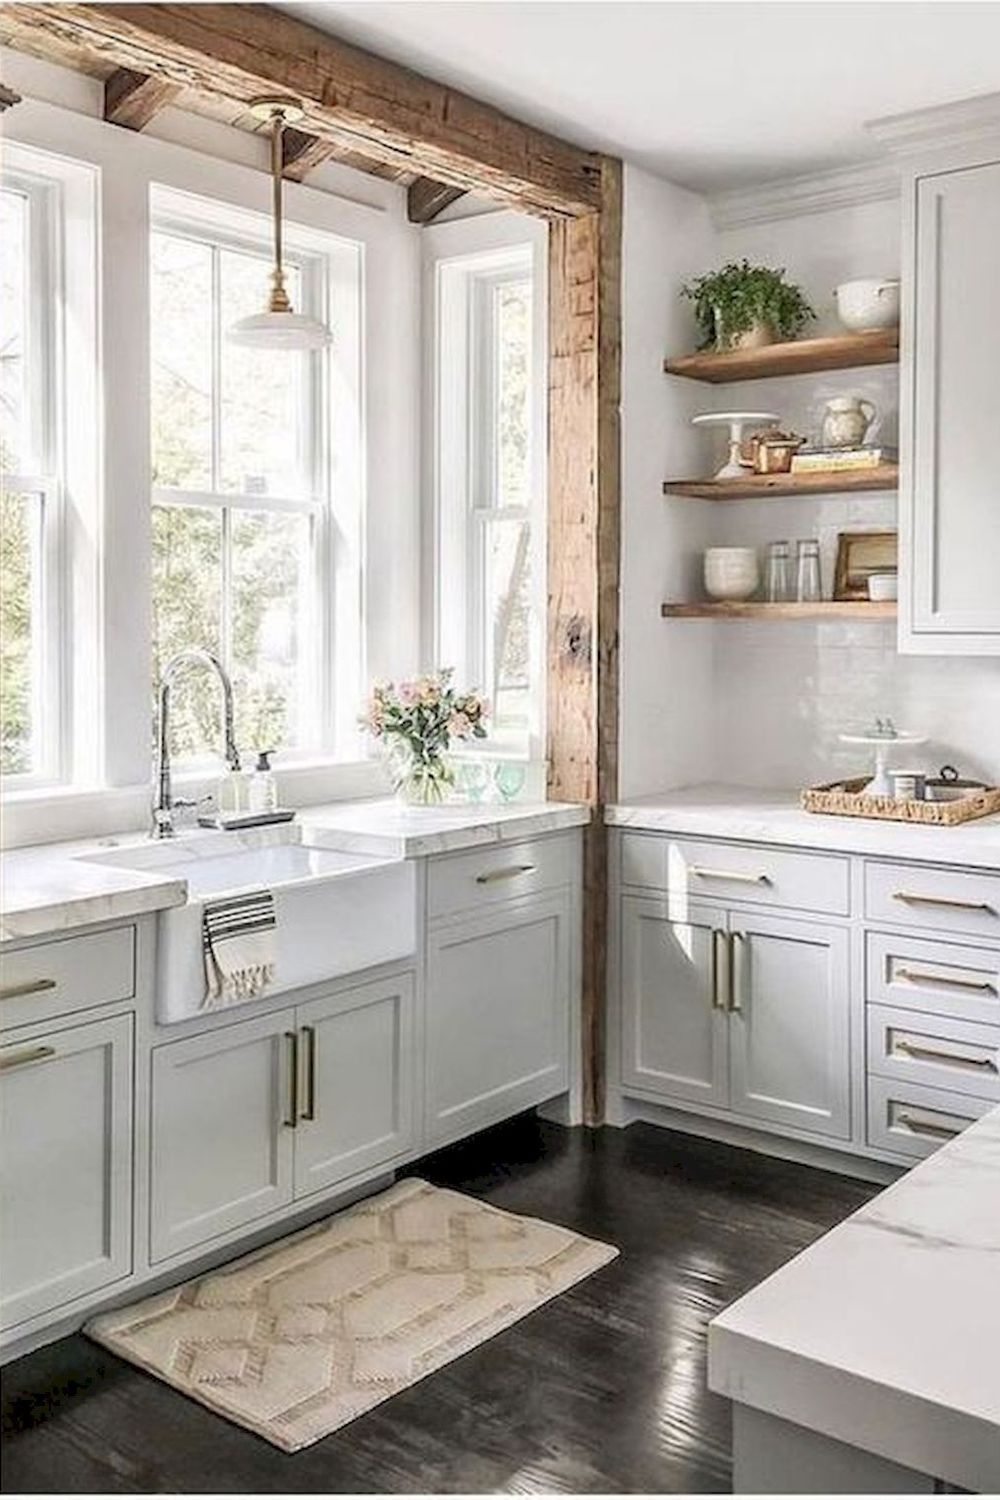 Photo of Farmhouse kitchen Kitchen cabinet Rustic modern Cabinetry Room Furniture